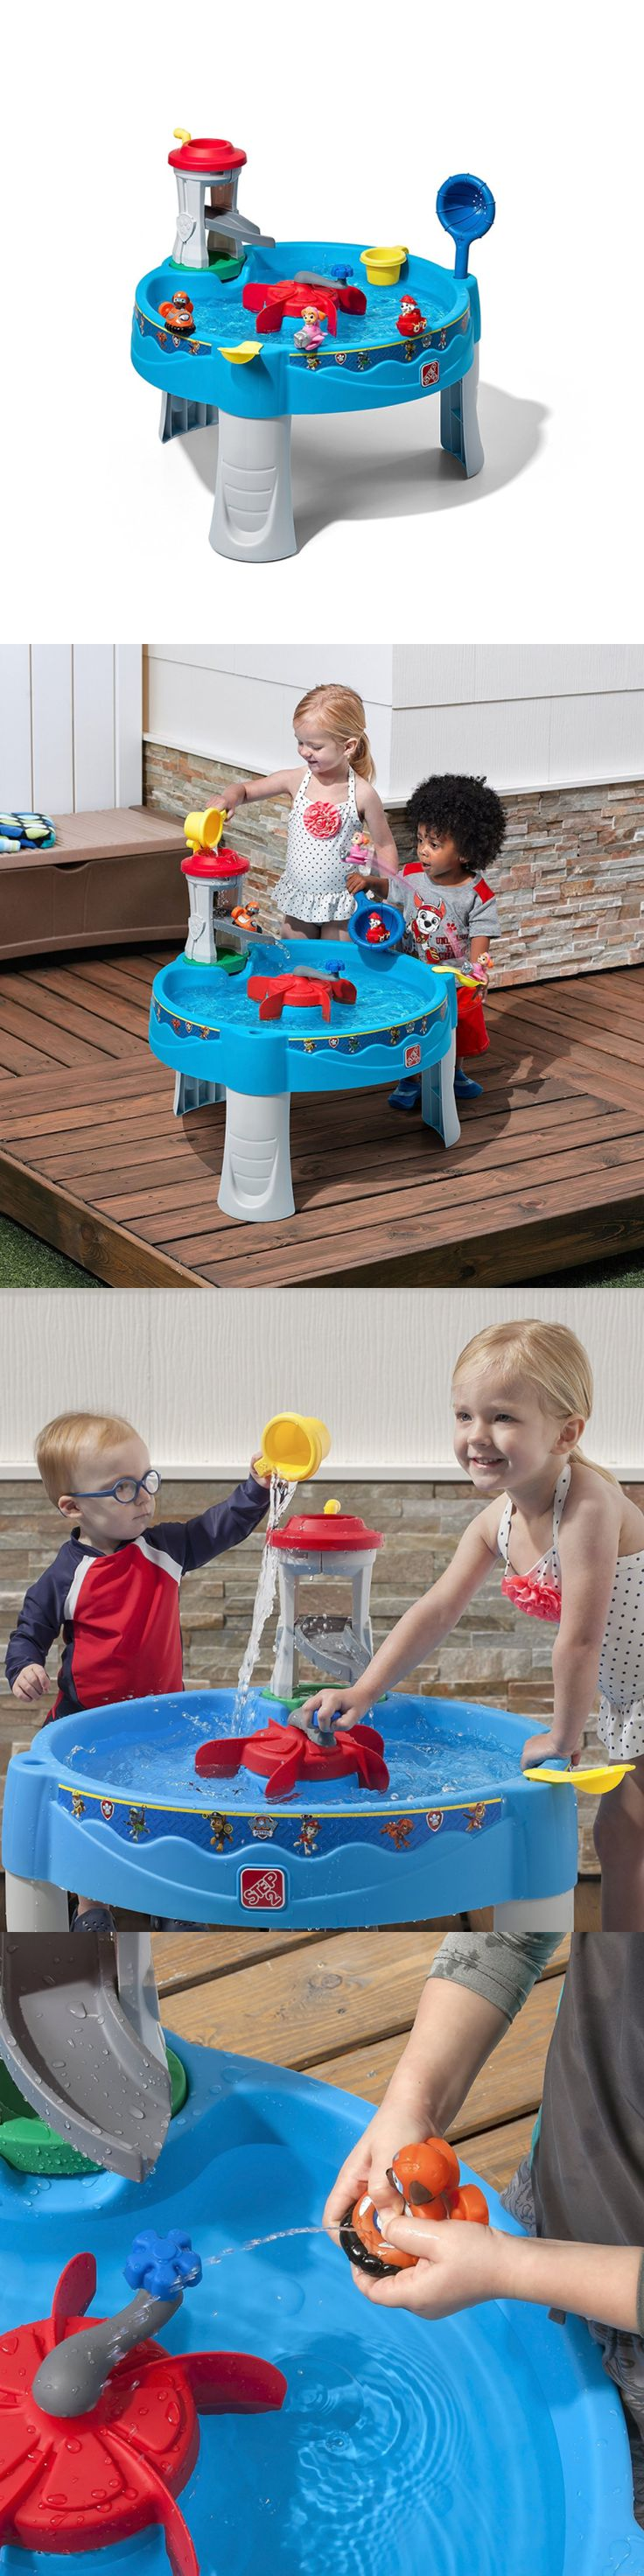 Water Toys 145993: Step2 Paw Patrol Water Table -> BUY IT NOW ONLY: $54.99 on eBay!